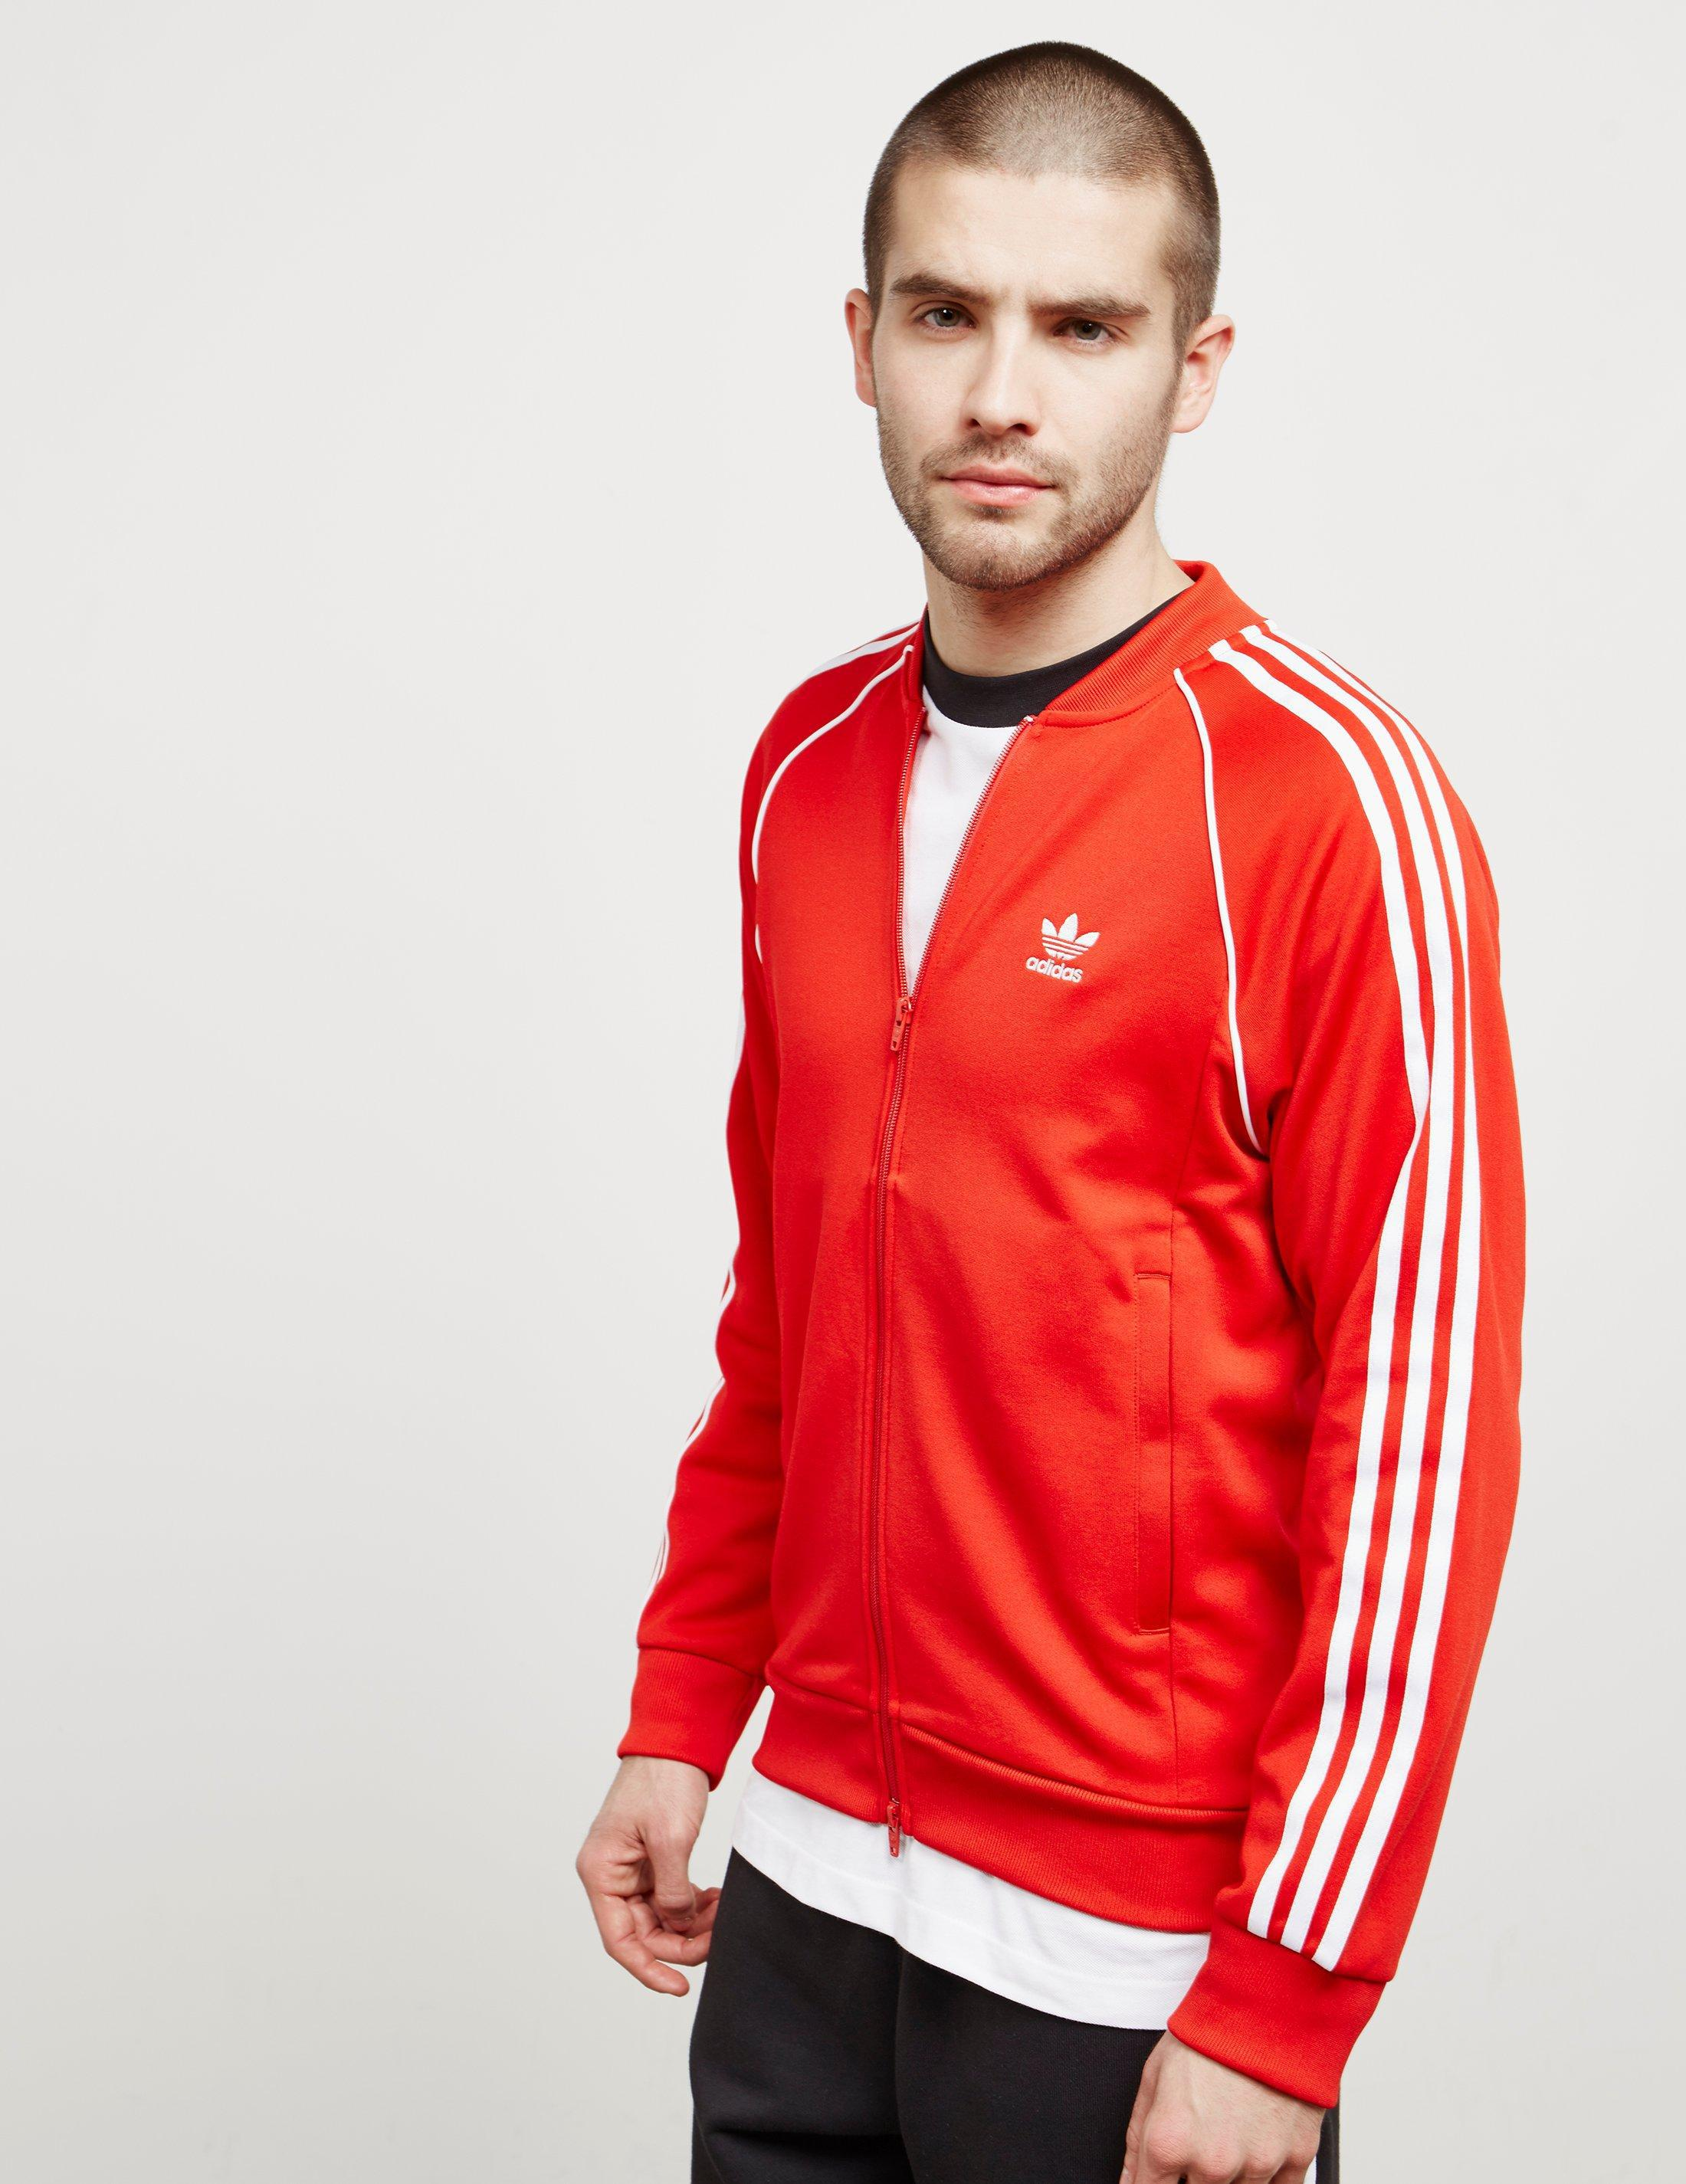 Adidas Originals Superstar Men's SST Track Jacket Red